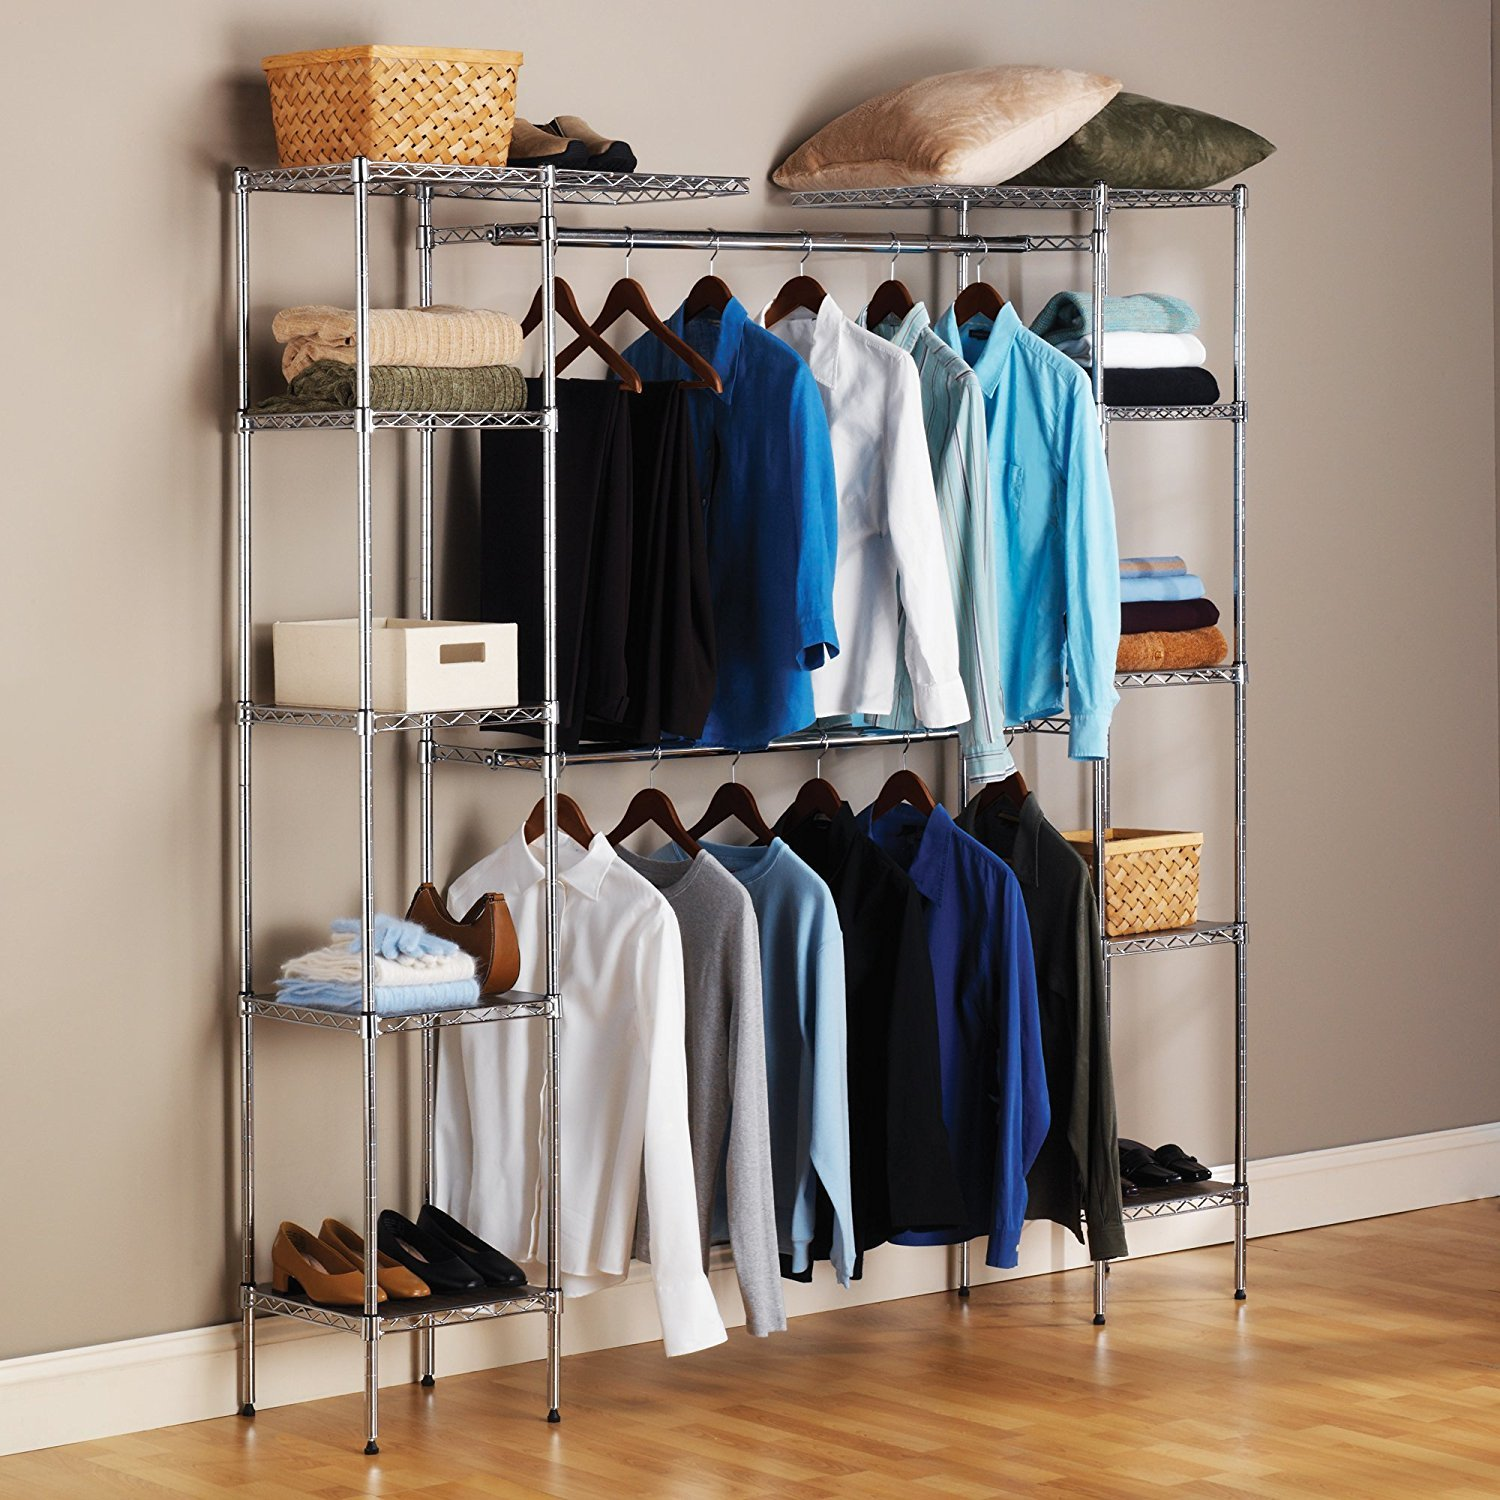 drool here closet over cheap beautiful organizer s examples of ideas furniture seville to organizers in decor reach depot home